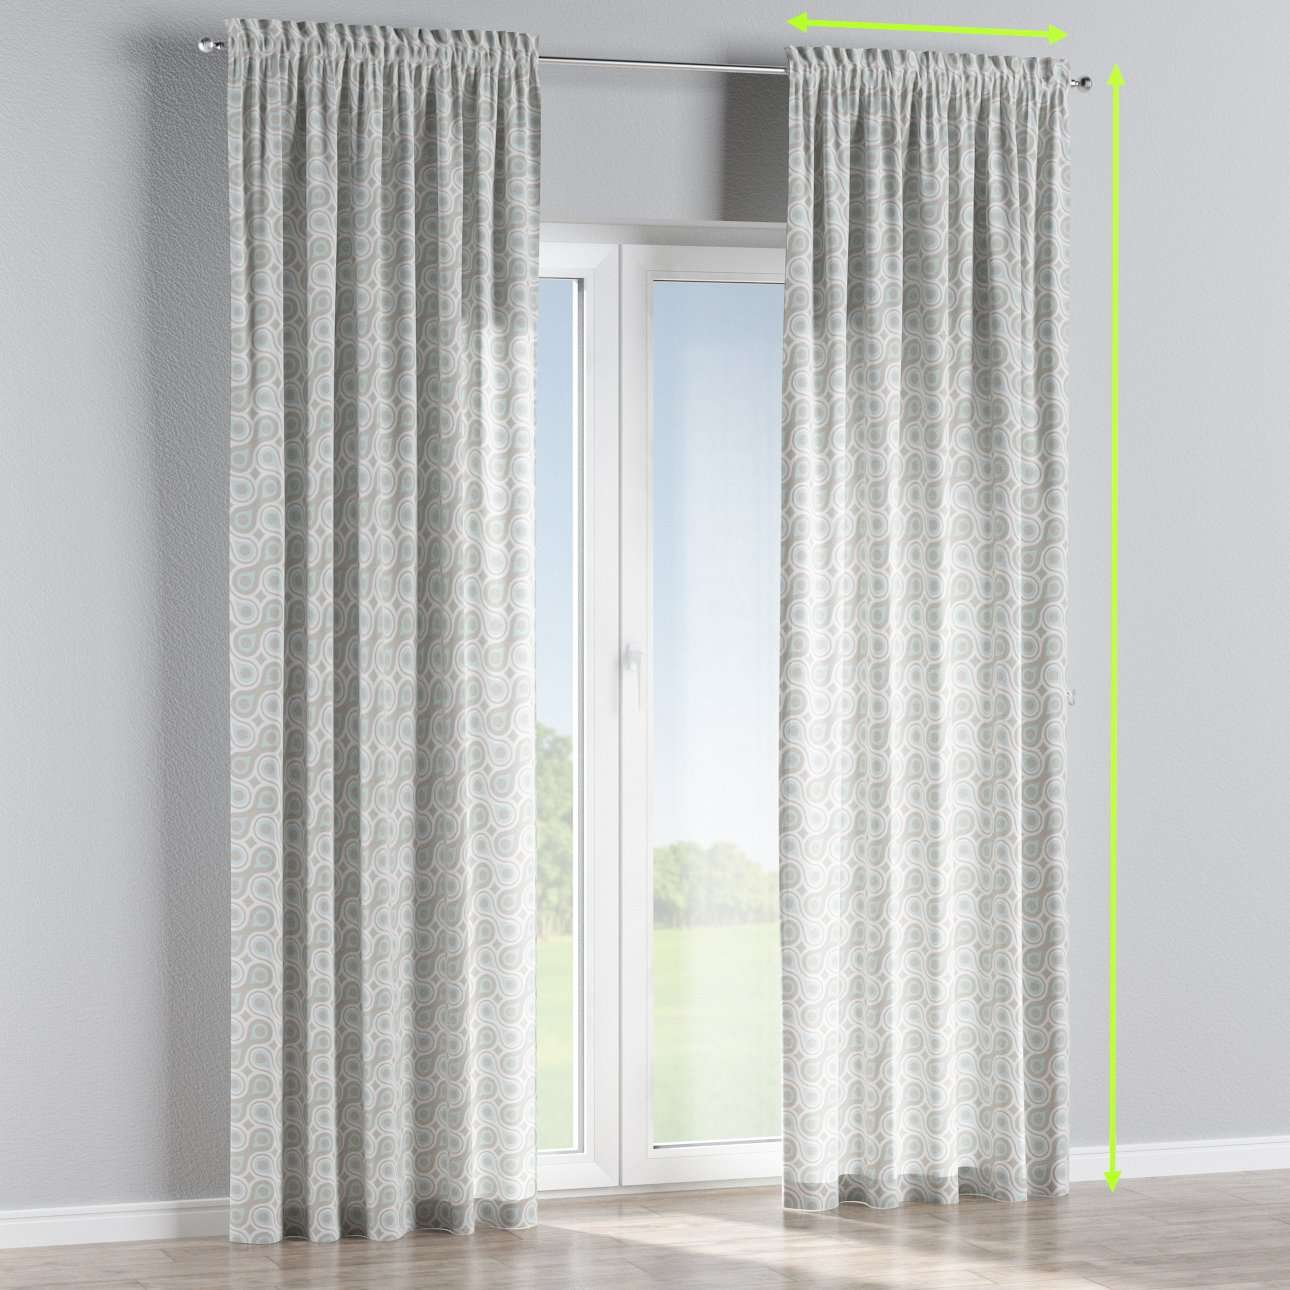 Slot and frill curtains in collection Flowers, fabric: 311-13